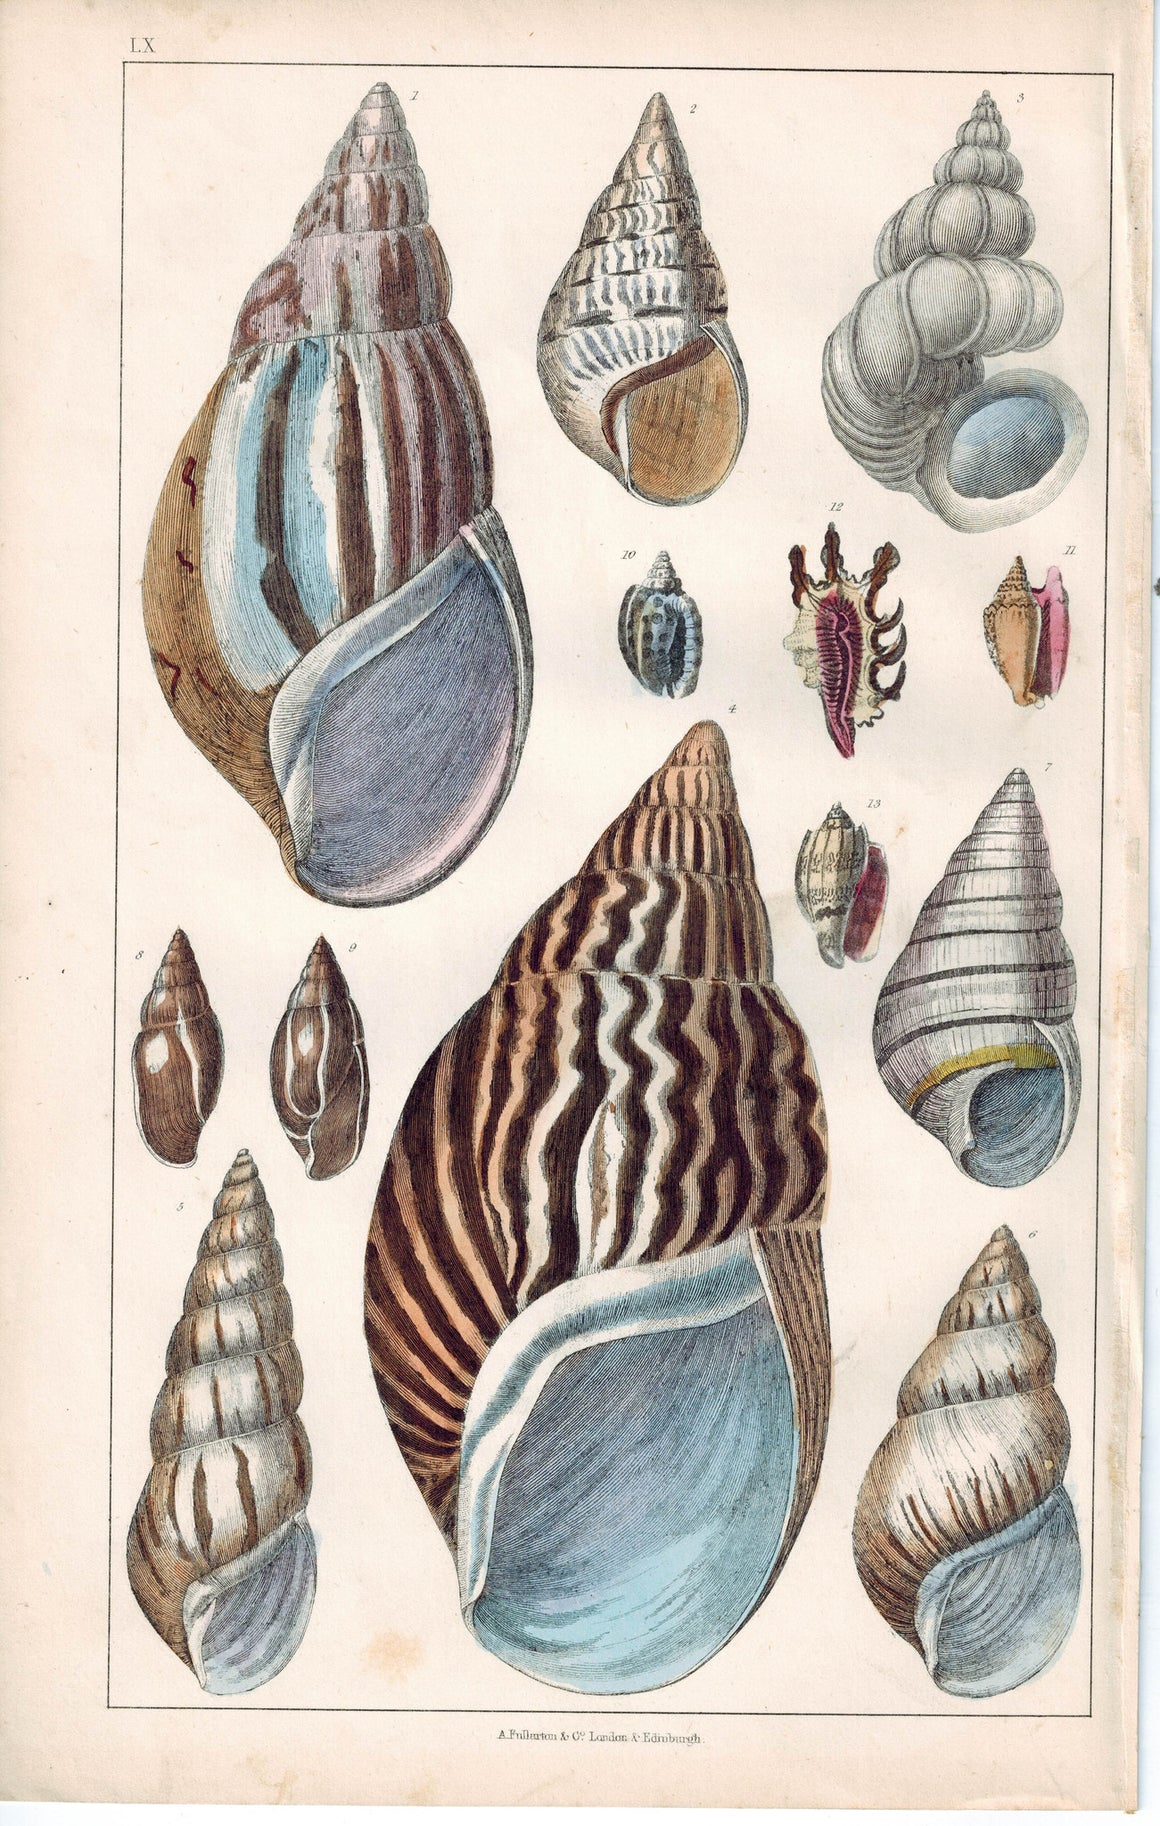 Seashell Zebra Agate Turbo Scalaris 1853 Antique Hand Color Engraved Print